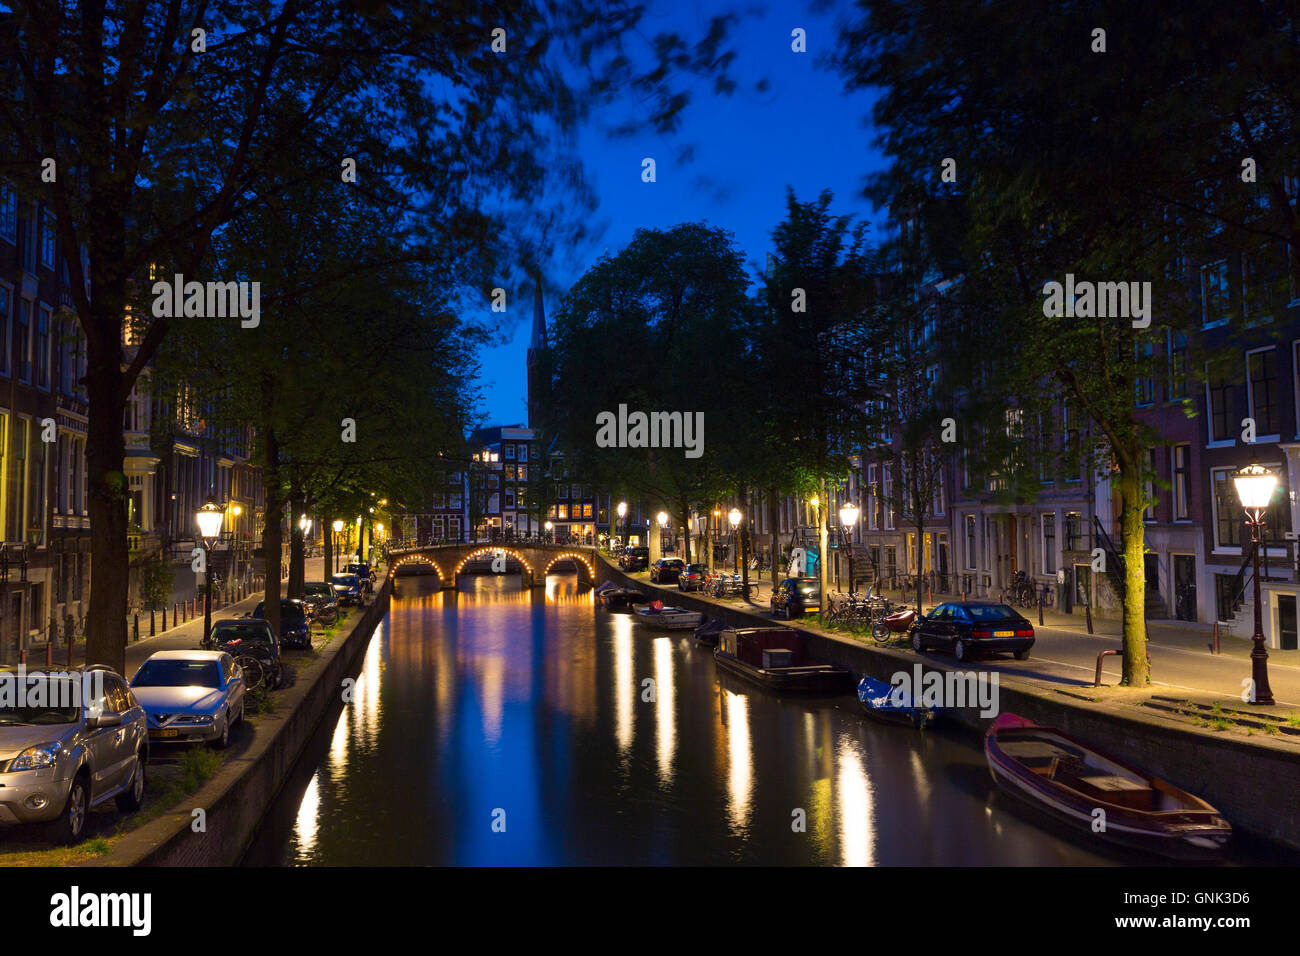 Canal and bridge at Kaisersgracht and Leidsegracht in canal ring area, Jordaan district, Amsterdam - Stock Image